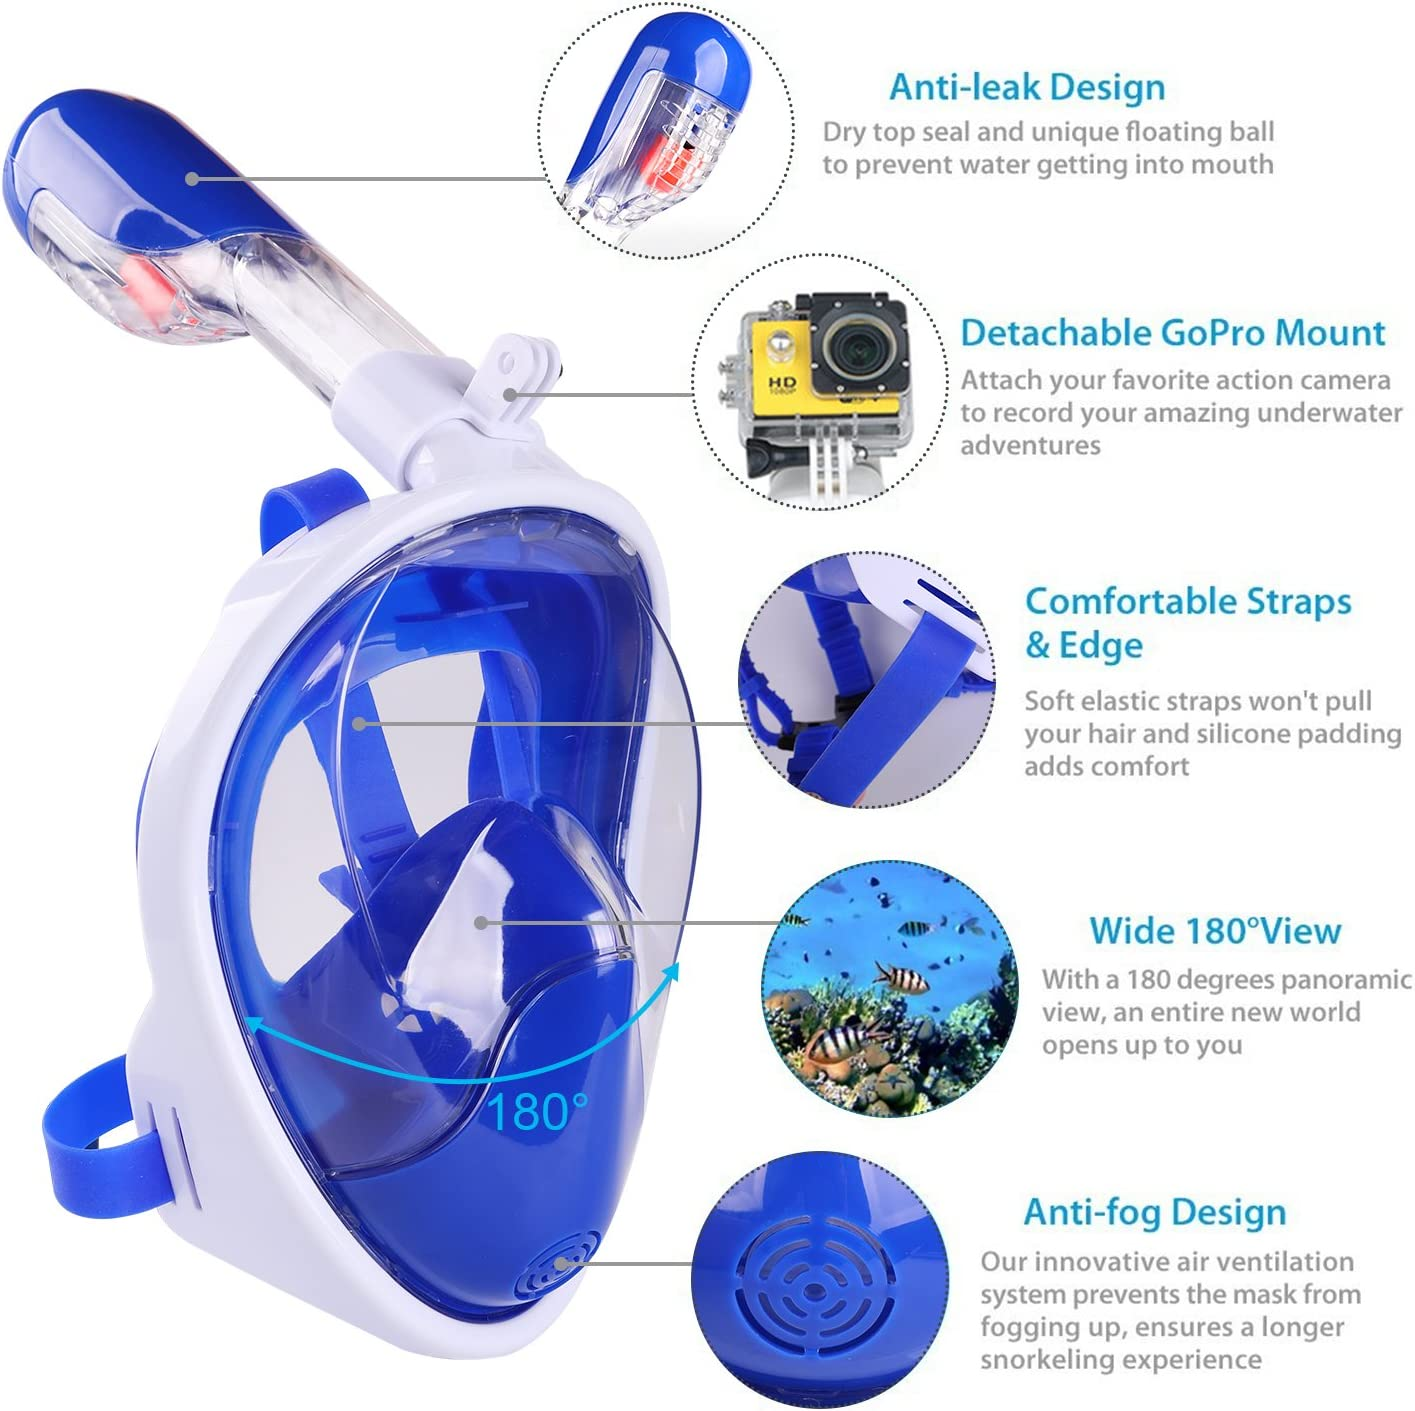 See More Water World Larger Viewing Area Panoramic Seaview 180/° Scuba Mask Anti-Fog Anti-Leak Snorkeling Technology AQUA A DIVE SPORTS Snorkel Mask Full Face Diving Mask